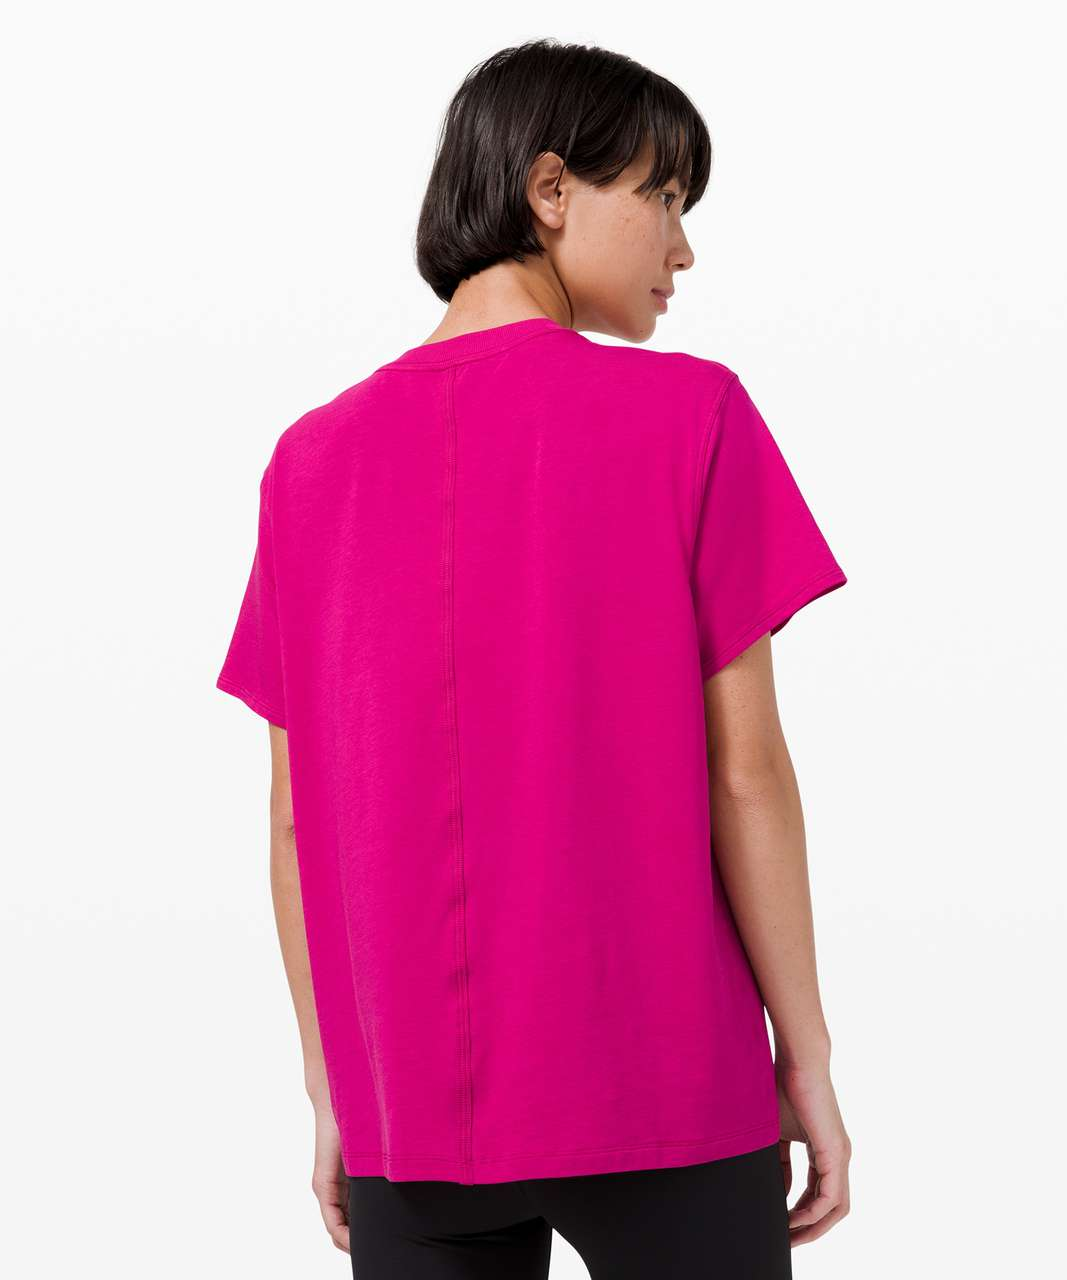 Lululemon All Yours Tee - Ripened Raspberry